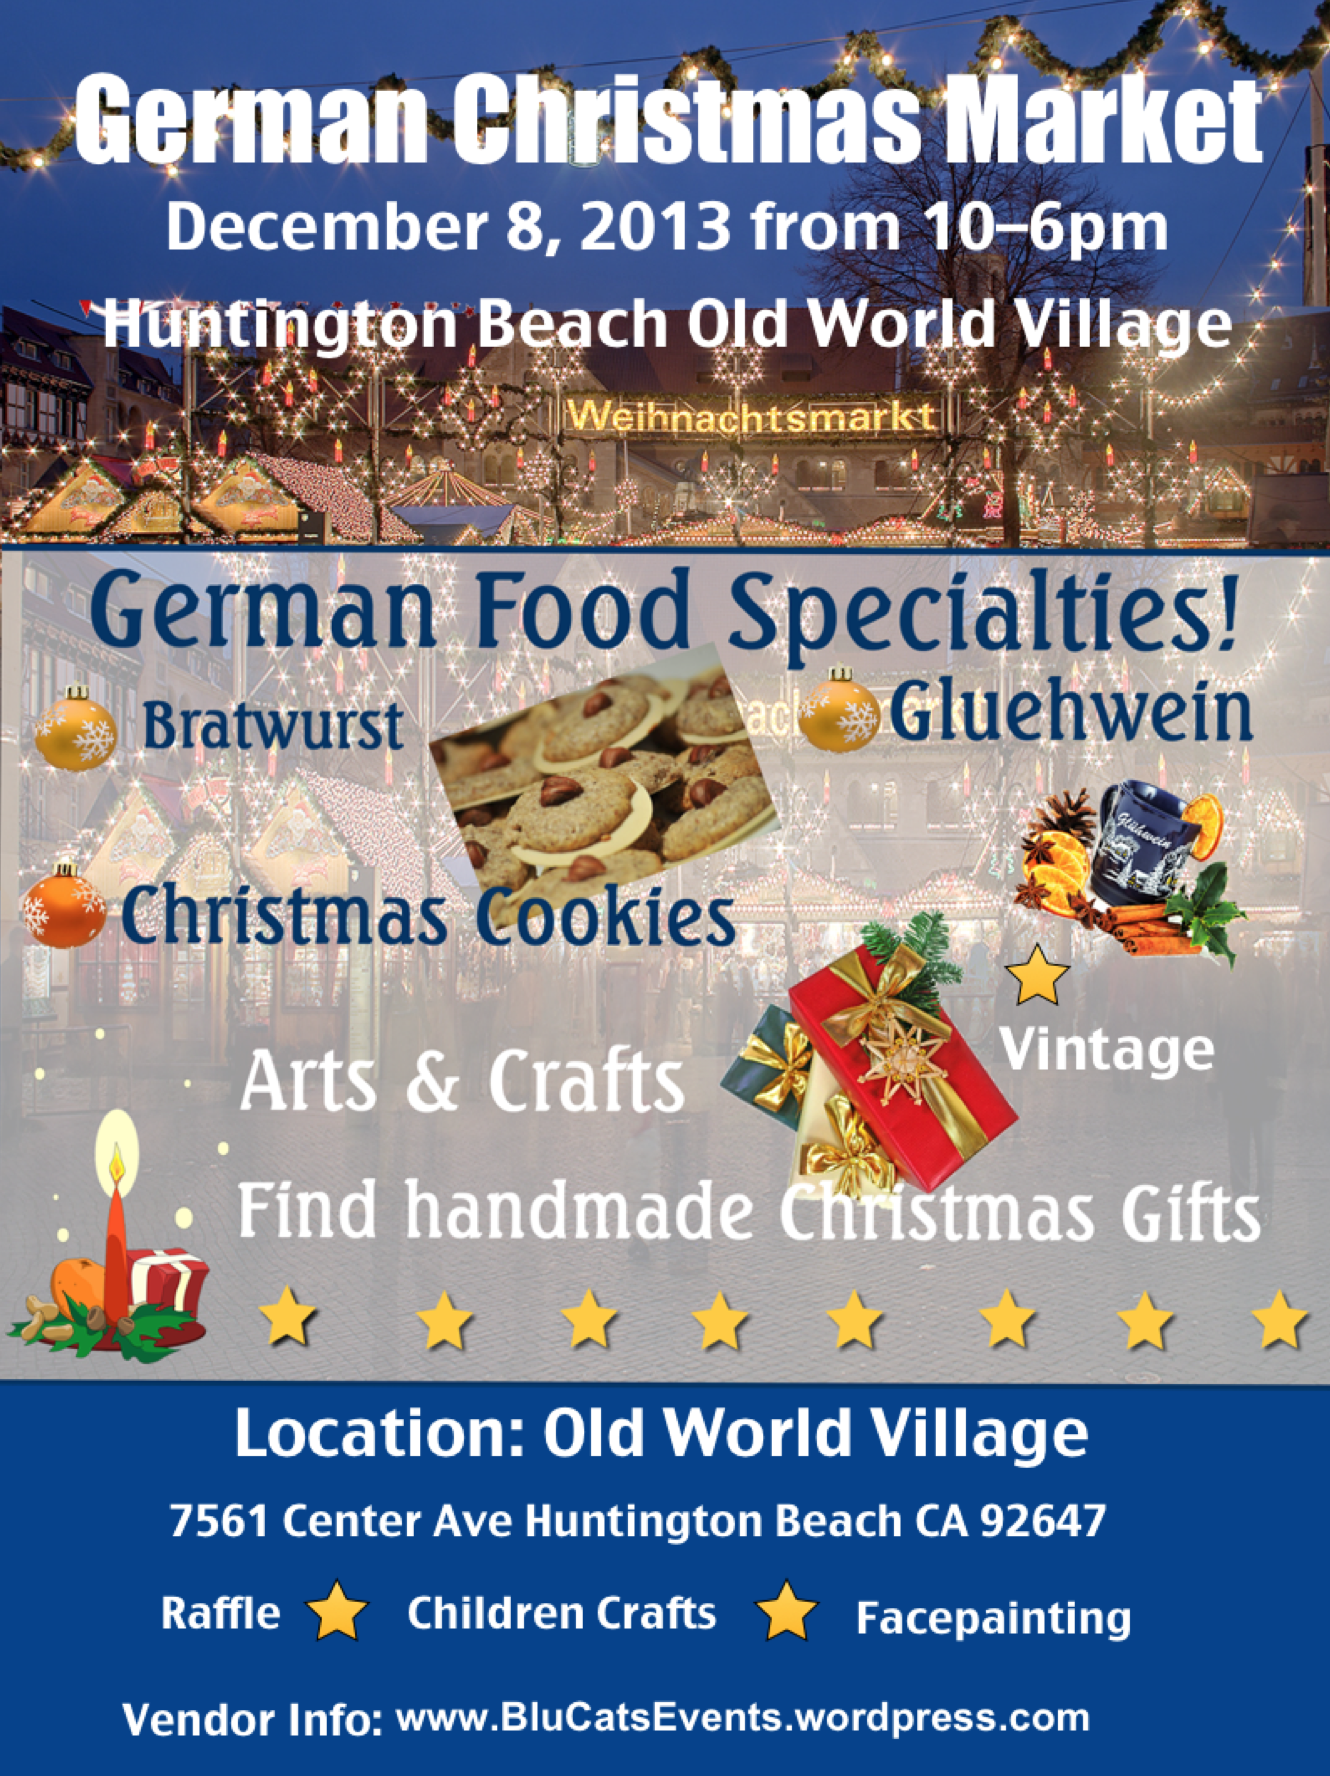 In Germany you can find Christmas Markets in every city from North